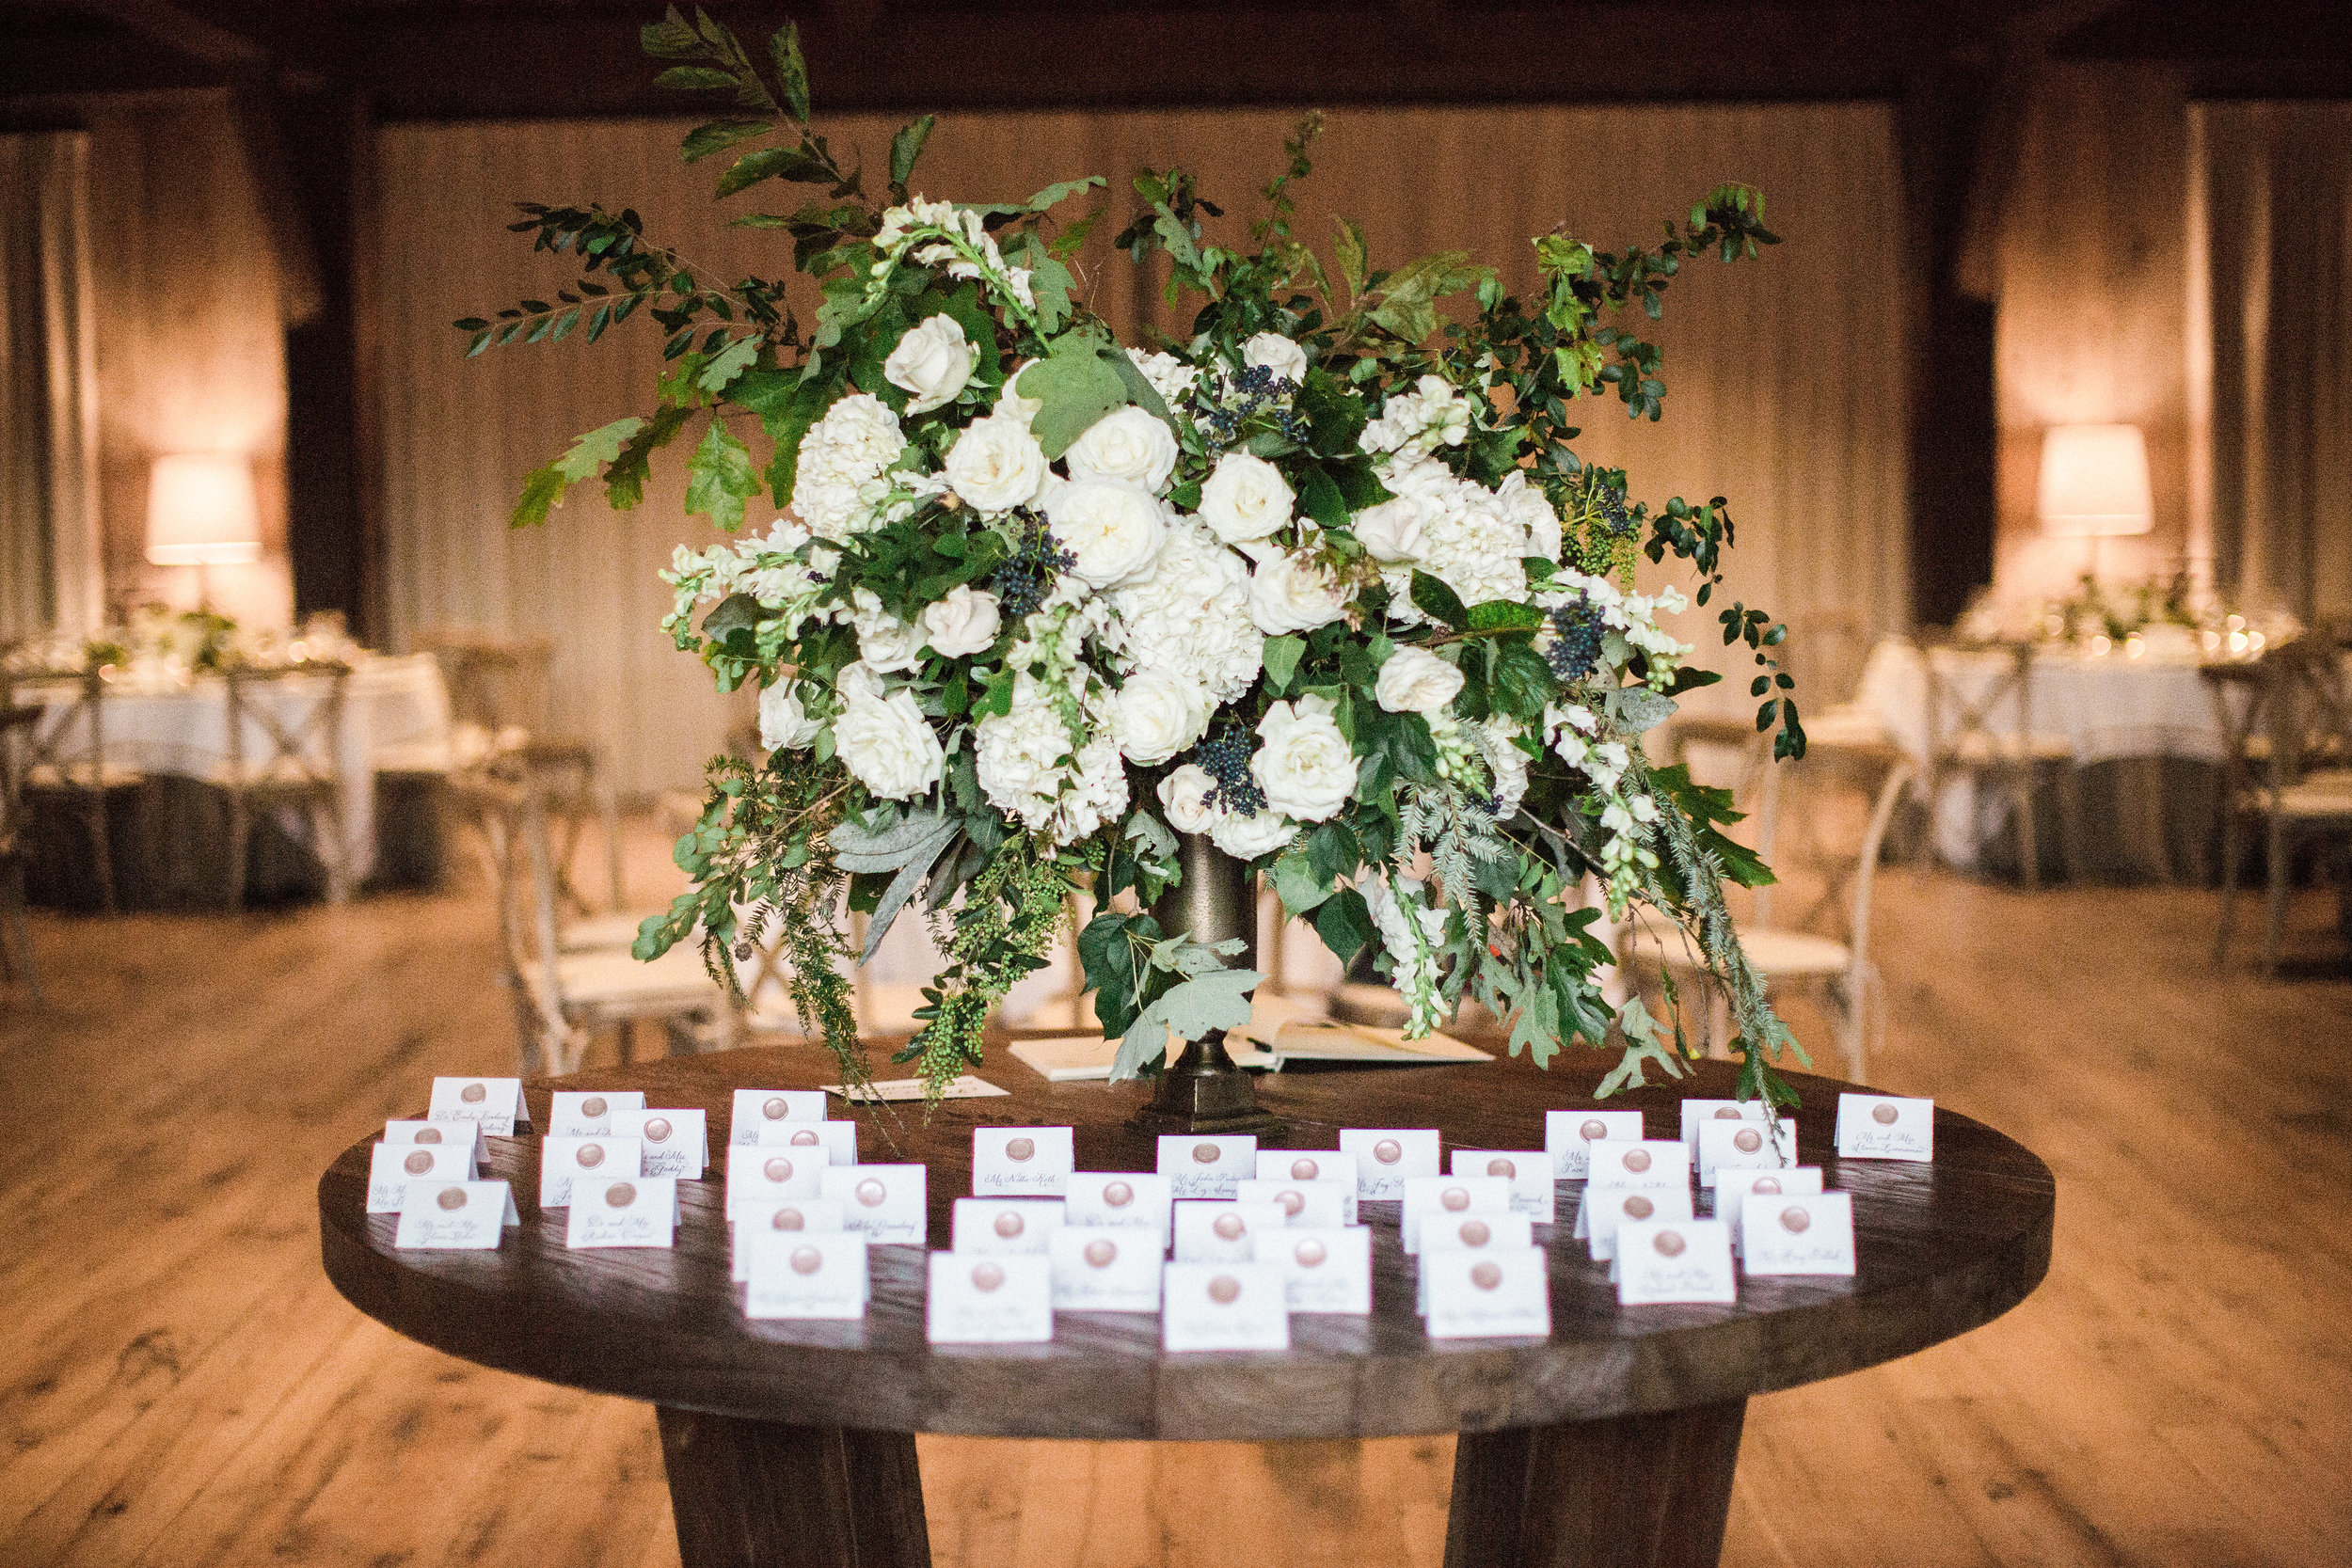 Large, asymmetrical floral arrangement with white flowers and untamed greenery and berries // Blackberry Farm Wedding Floral Design